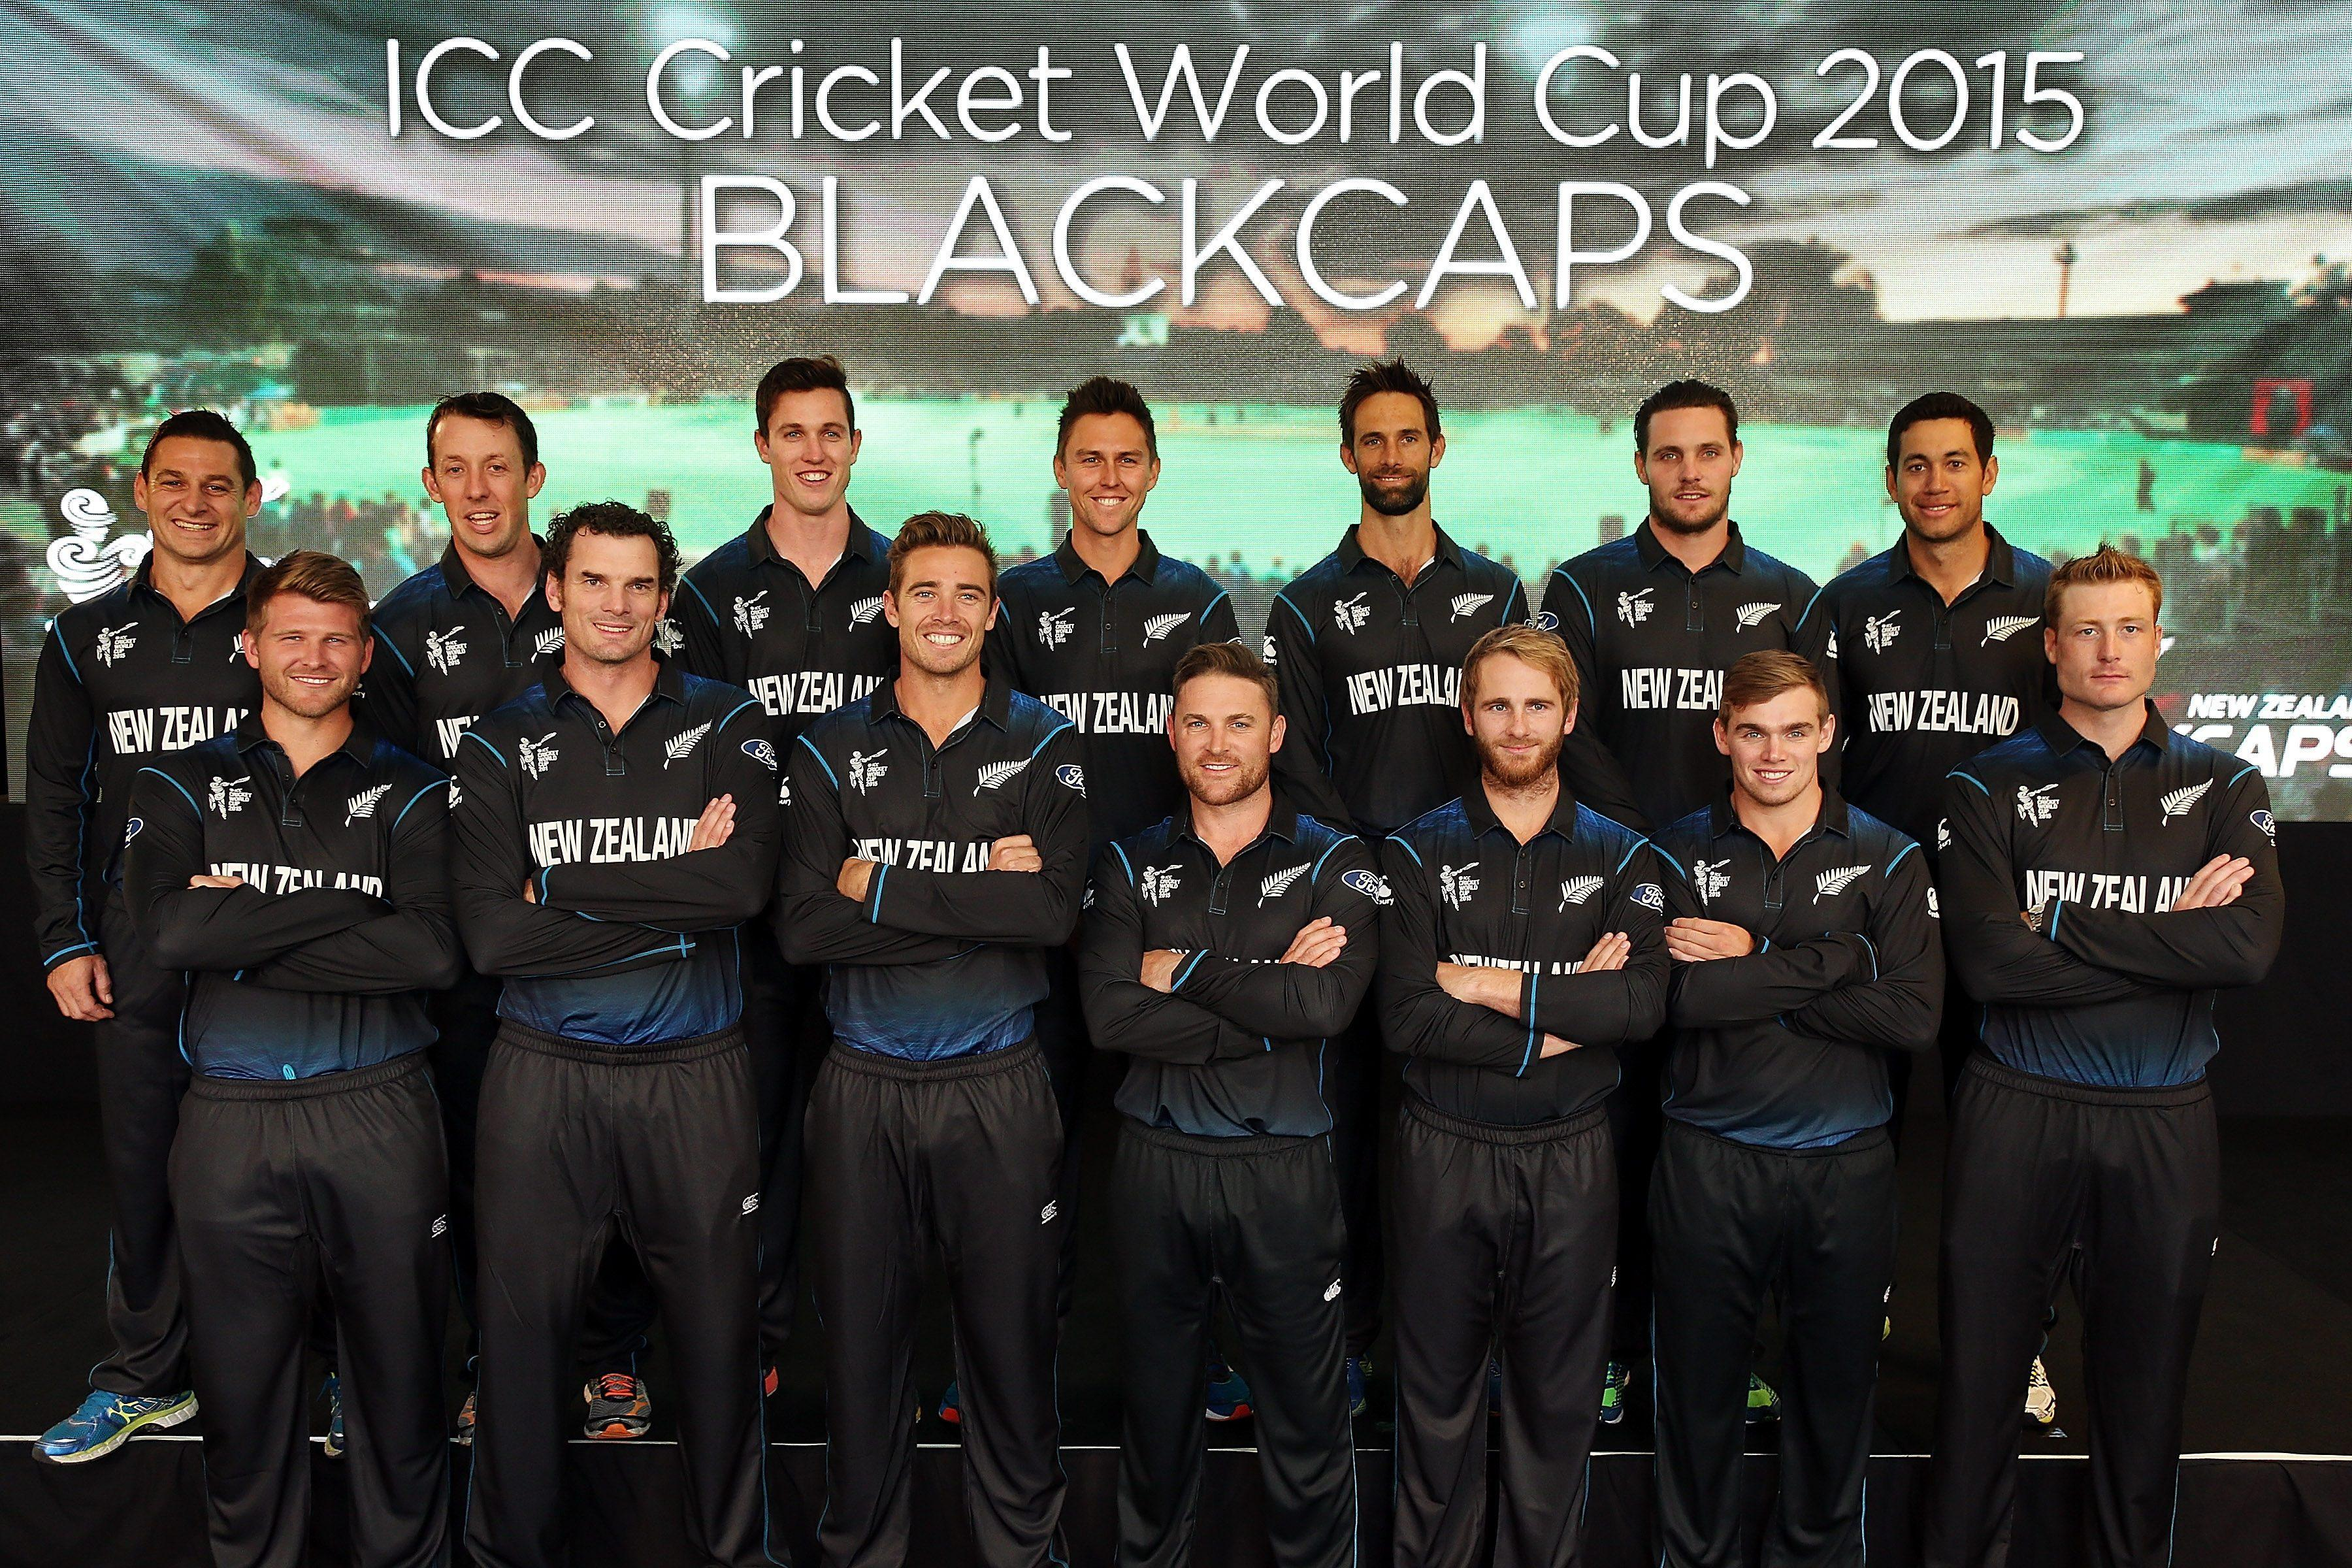 New Zealand Names Final 15 Man Squad For Icc Cricket World